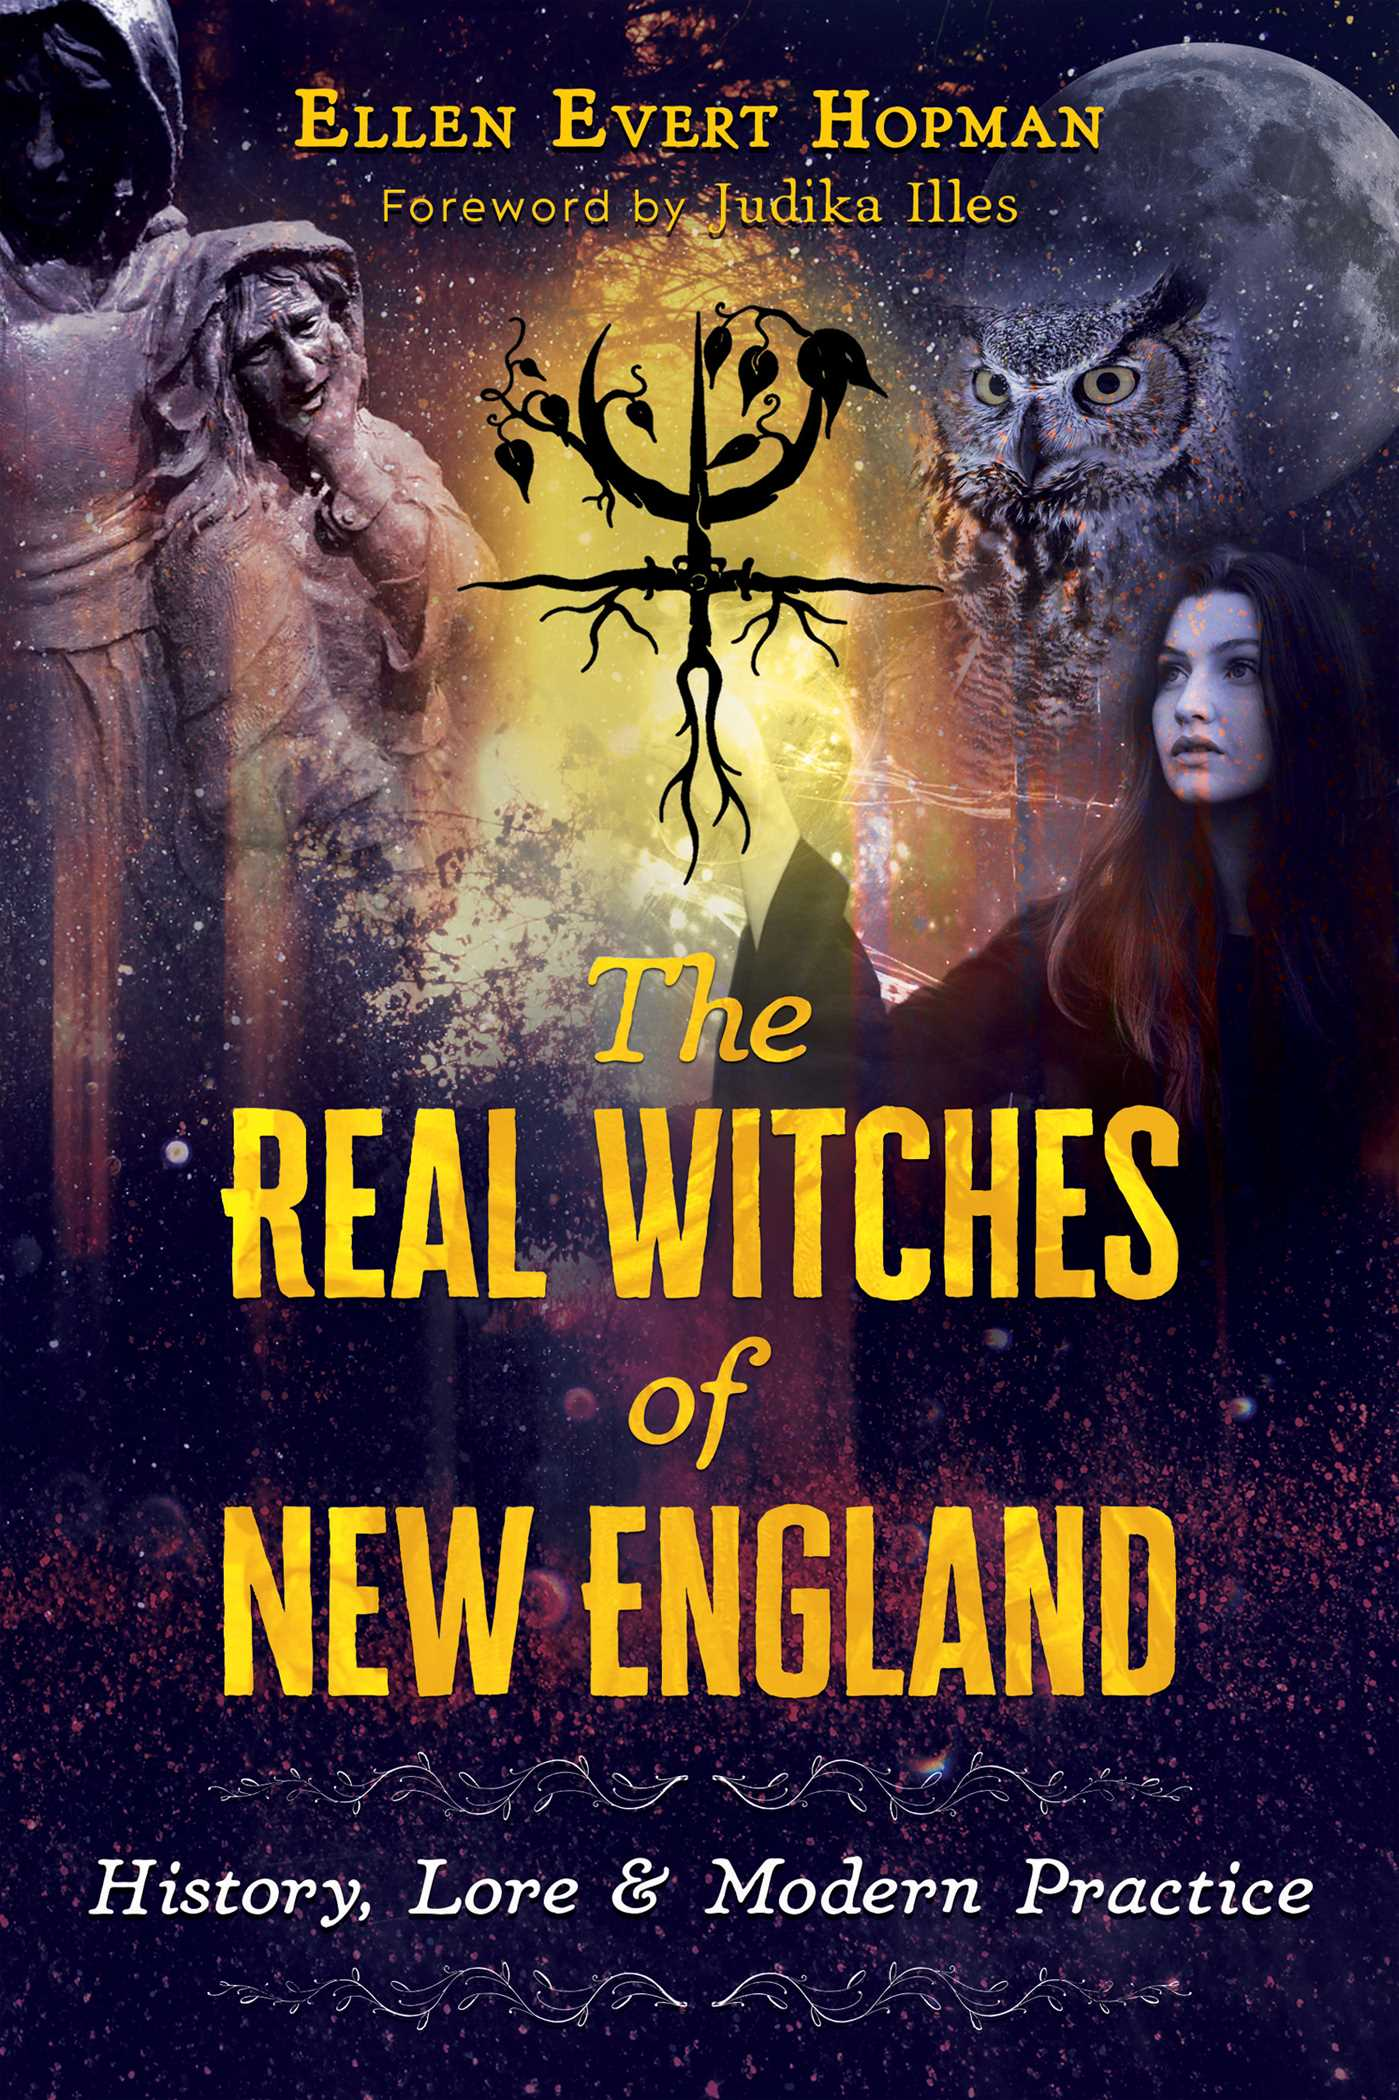 The real witches of new england 9781620557730 hr